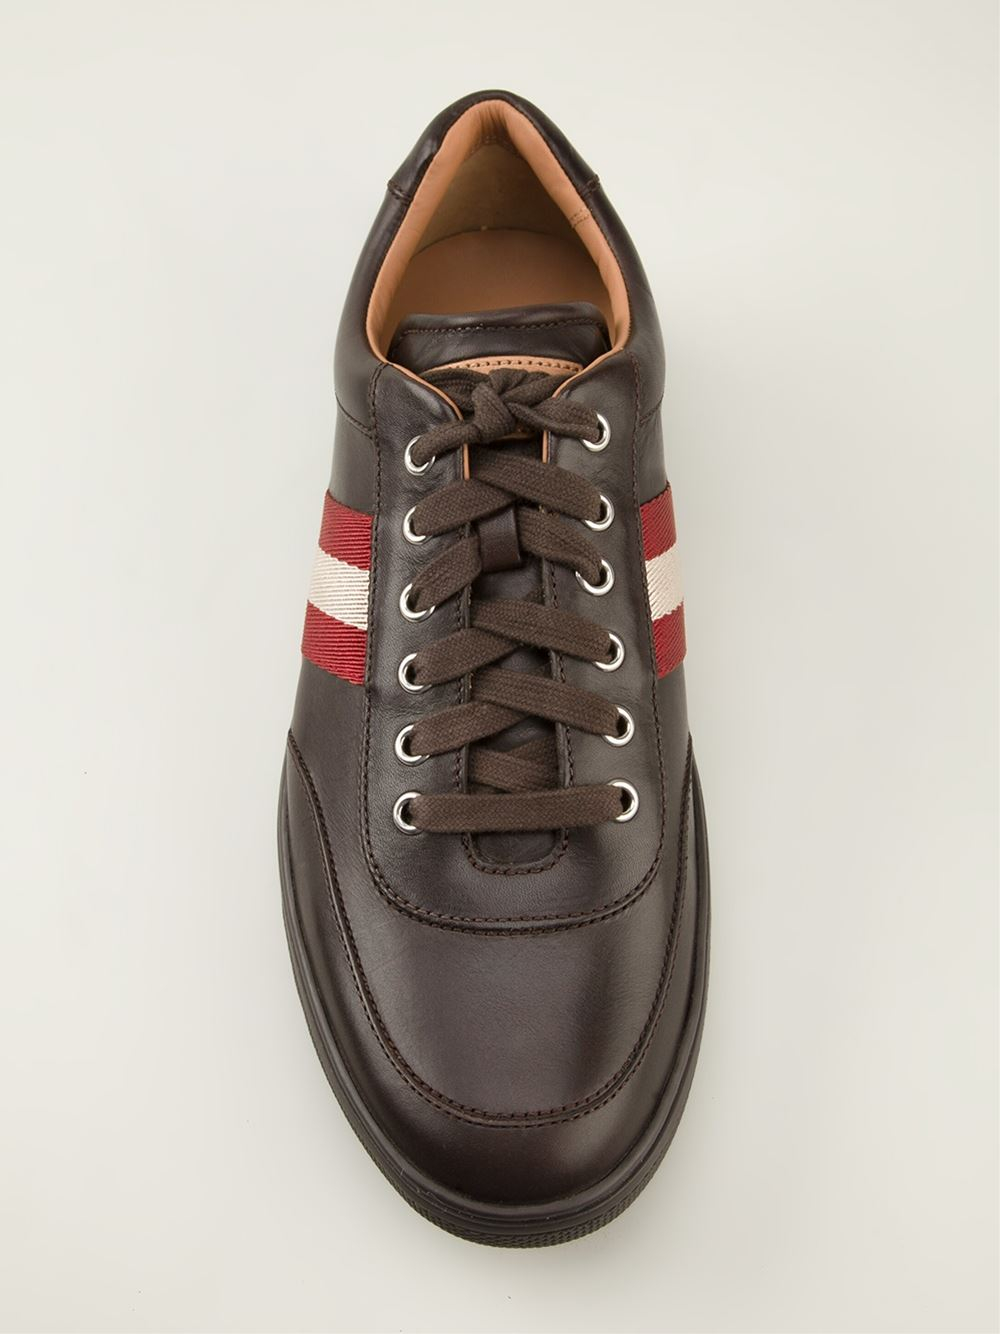 Lyst Bally Oriano Sneakers In Brown For Men